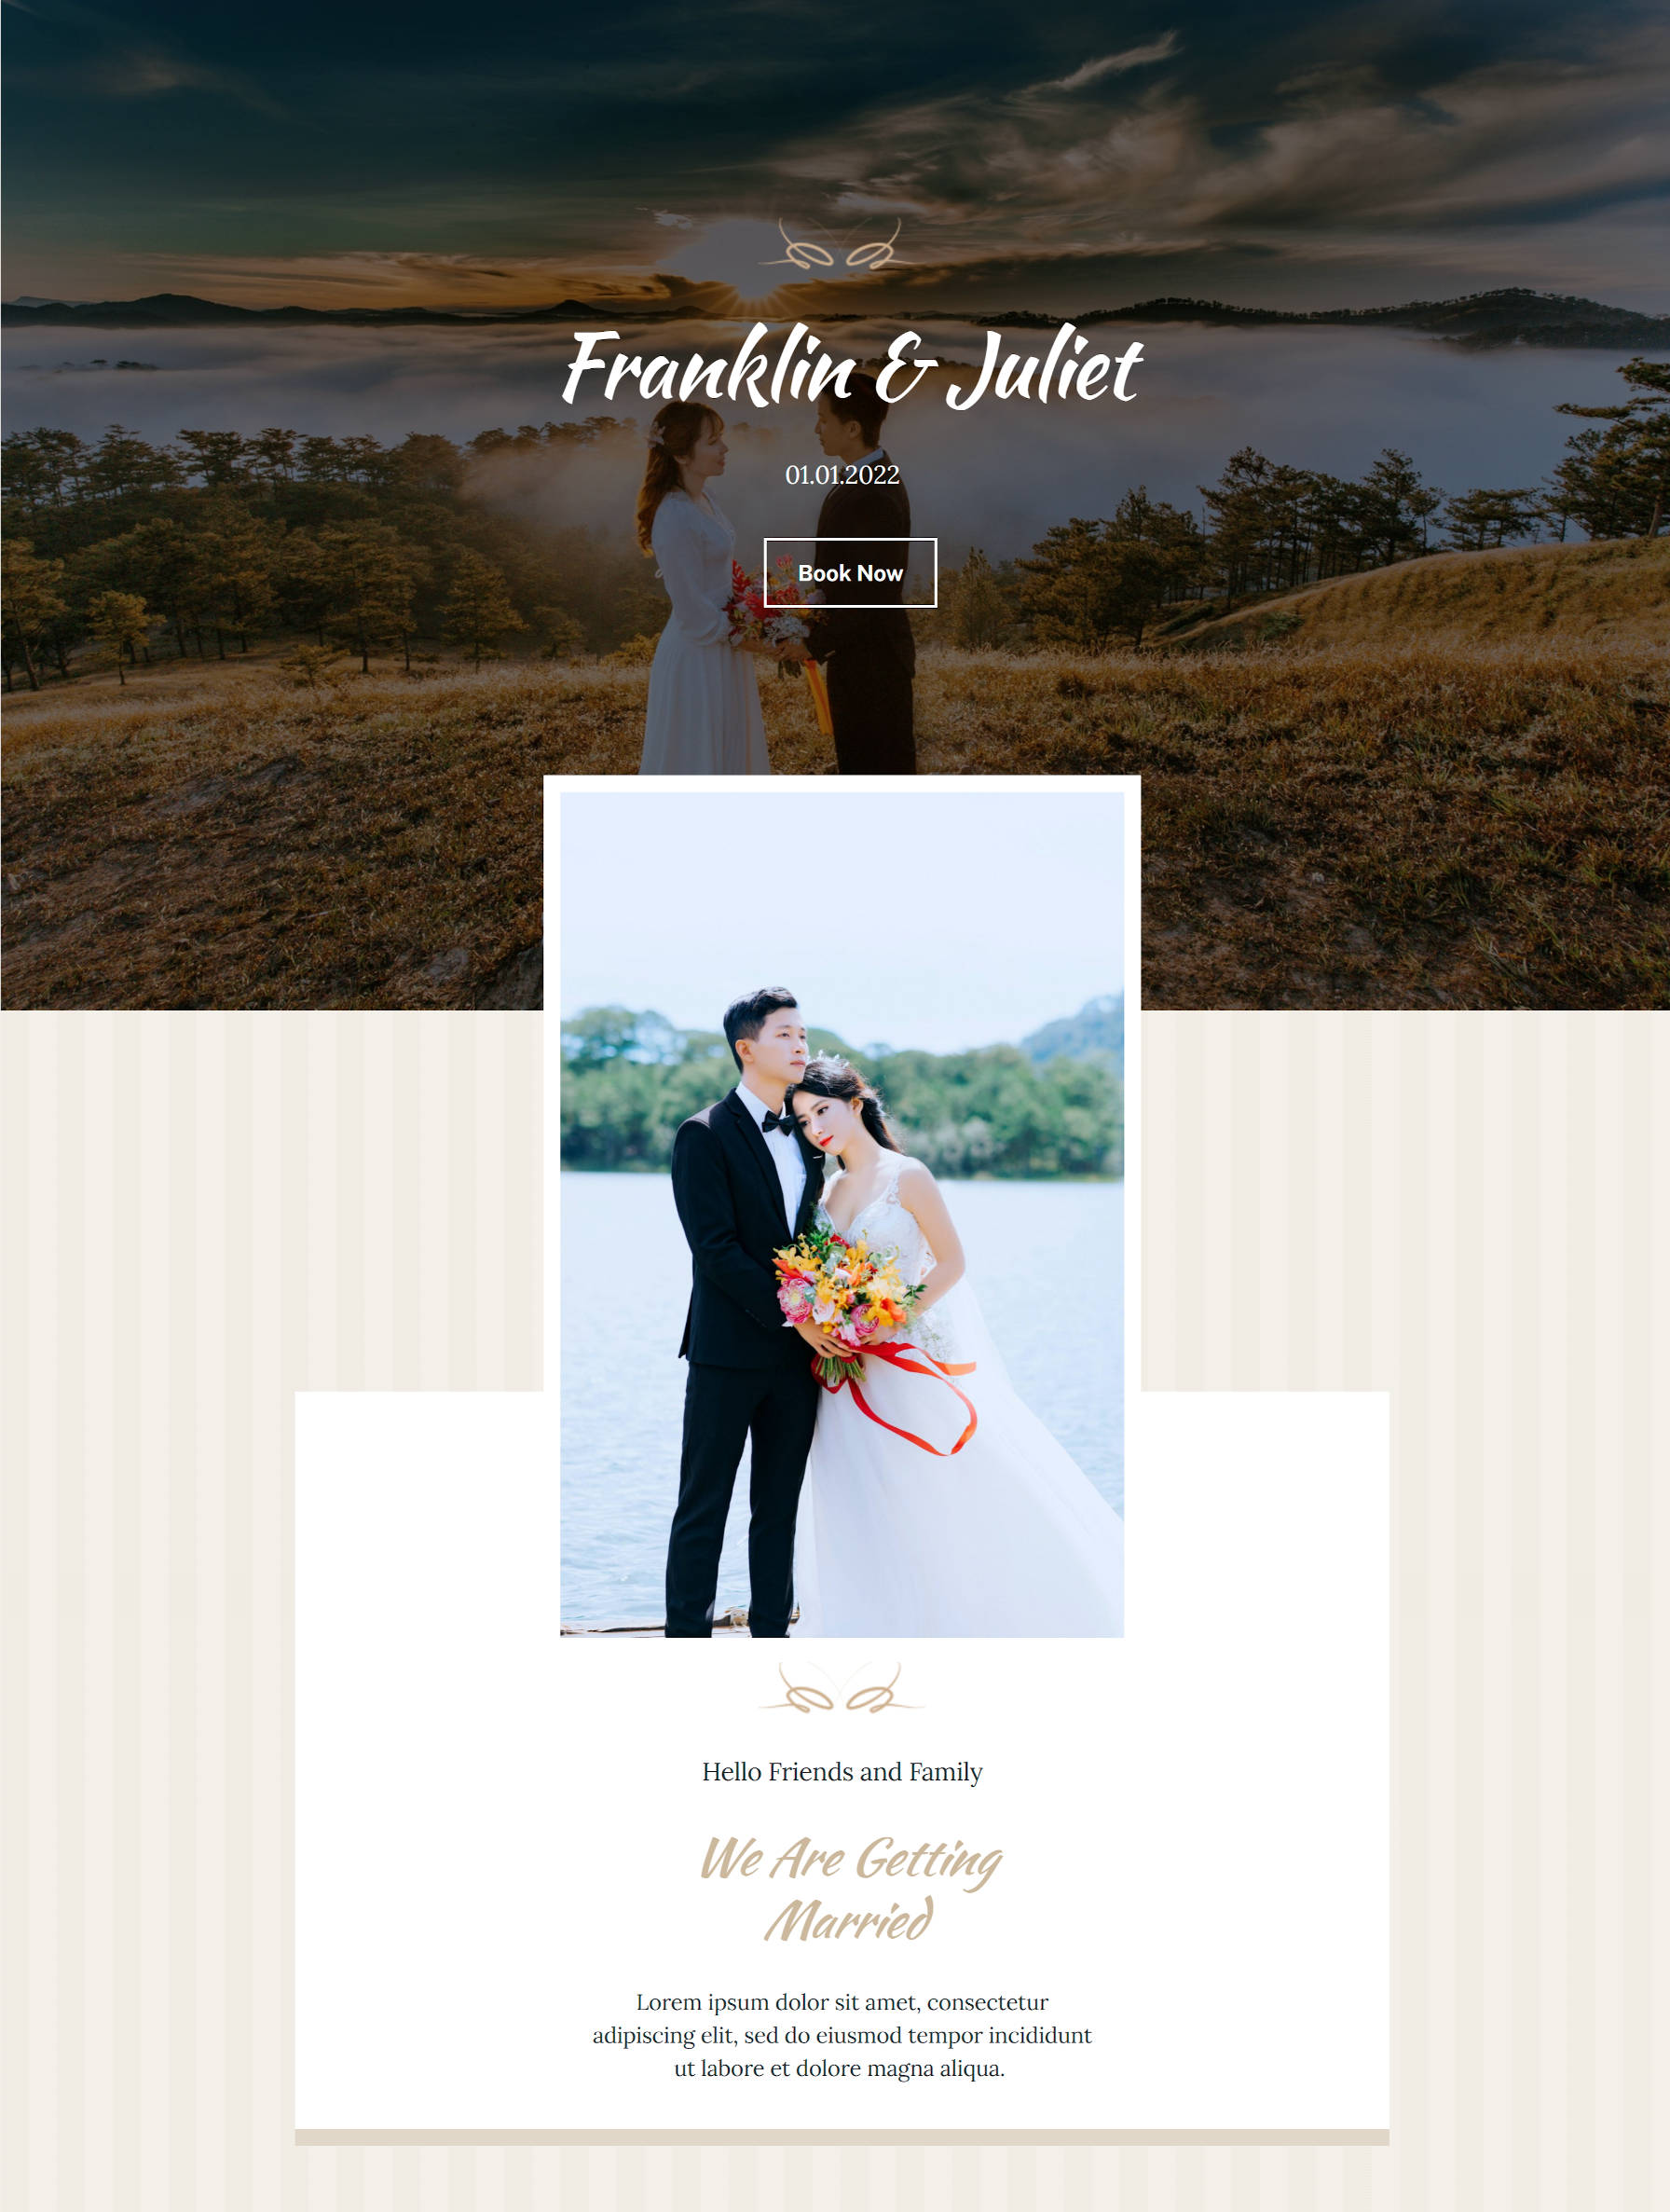 recreating-the-classic-wedding-wordpress-theme-homepage-with-the-block-editor-1 Recreating the Classic Wedding WordPress Theme Homepage With the Block Editor